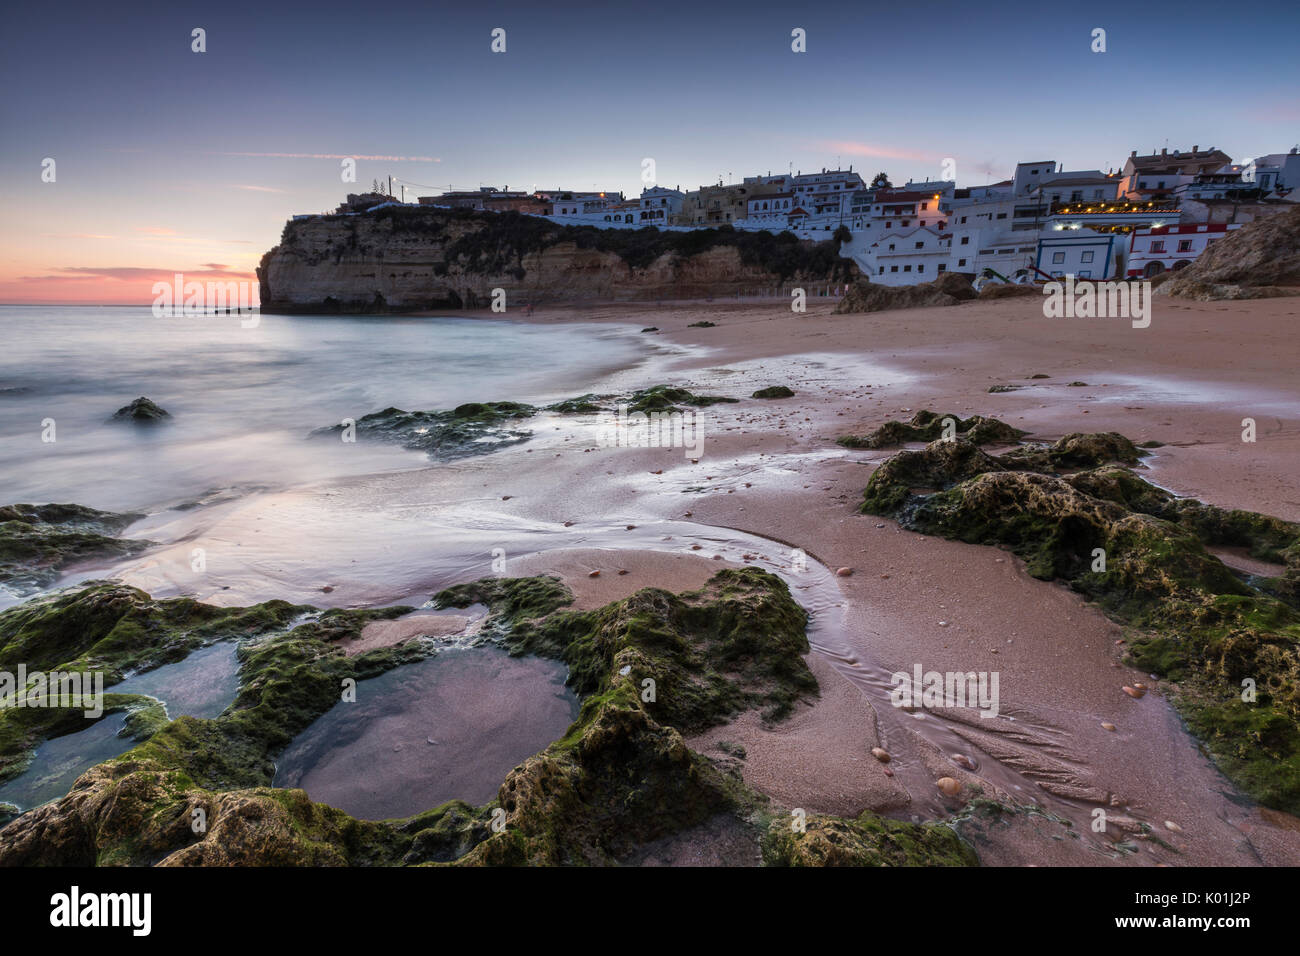 Sunset on the village perched on the promontory overlooking the beach of Carvoeiro Algarve Lagoa Faro District Portugal Stock Photo